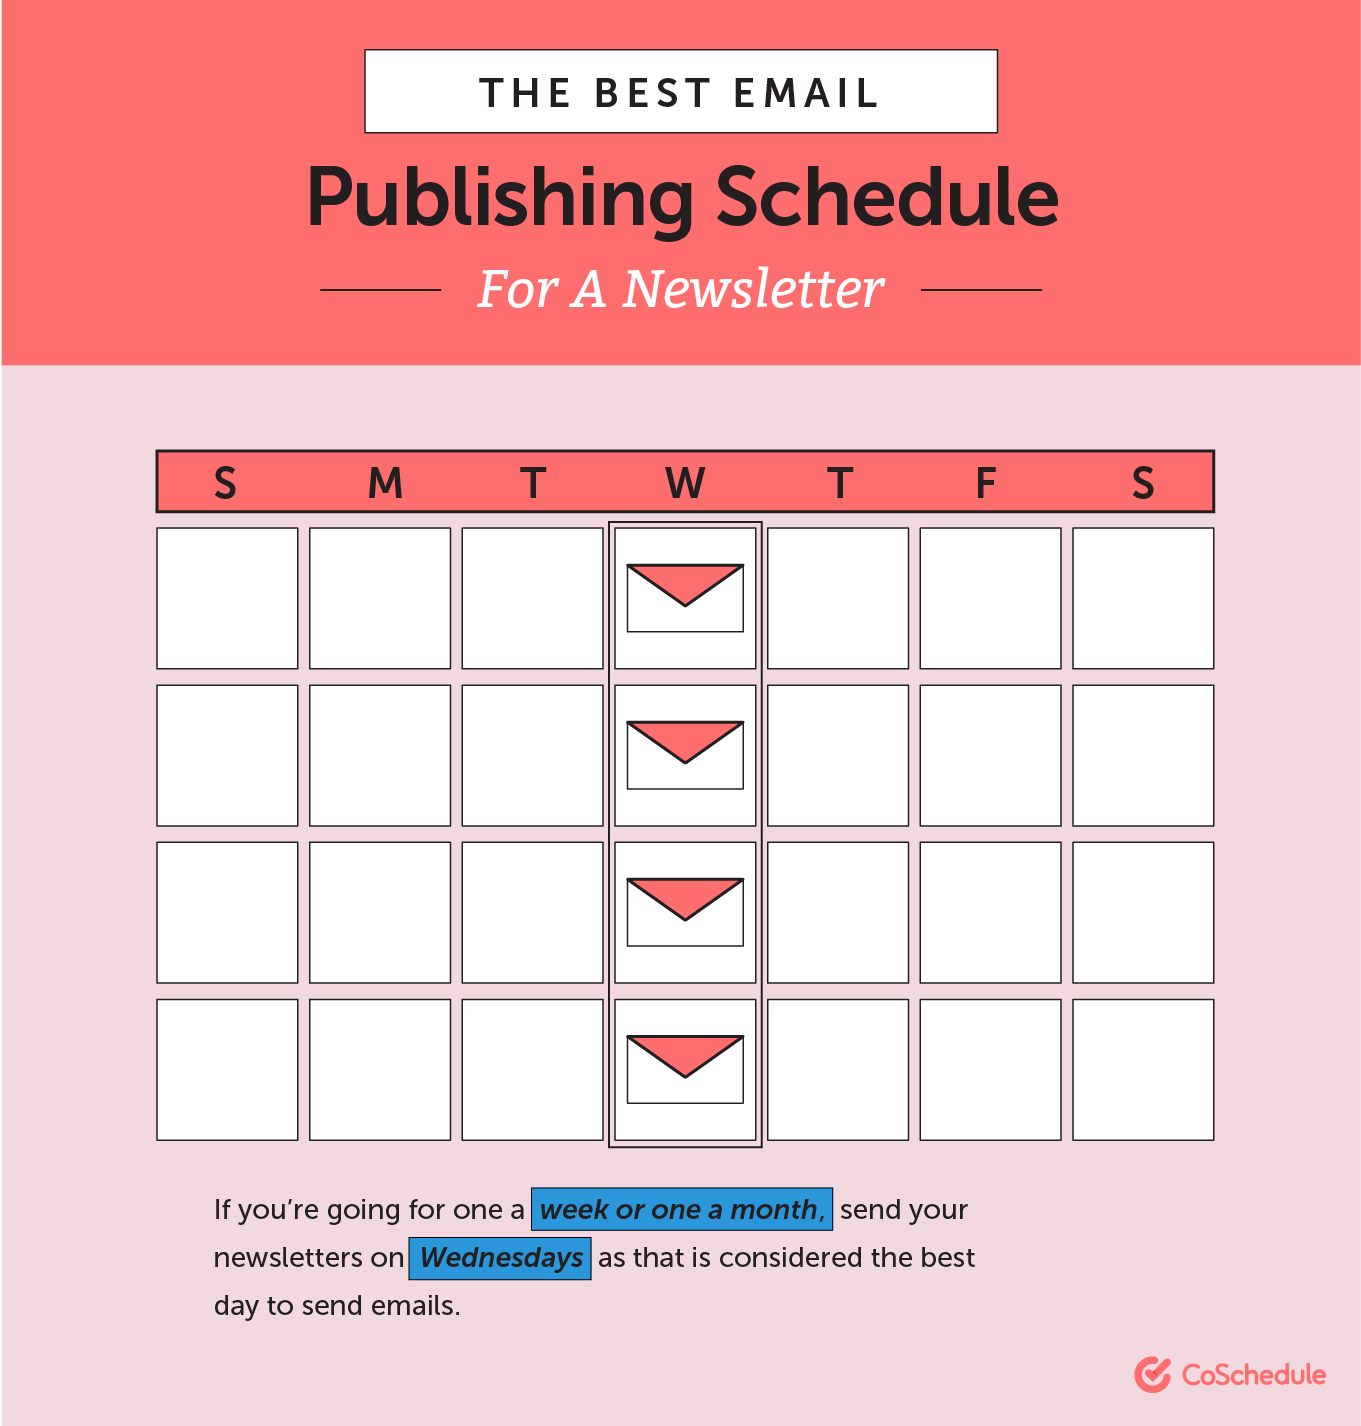 Publishing schedule for a newsletter